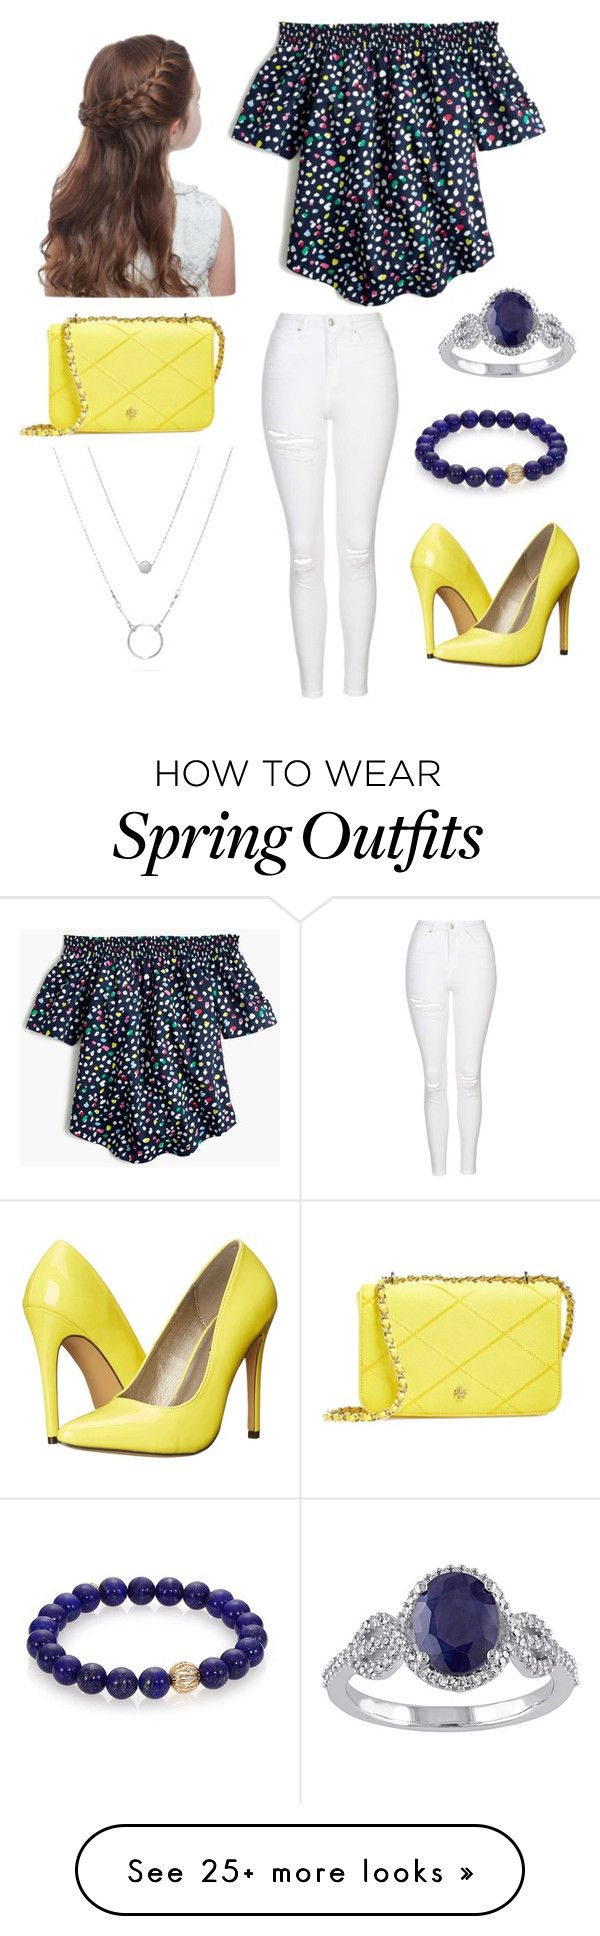 """""""Cute spring/fall outfit"""" by natileebrendes on Polyvore featuring J.Crew, Topshop, Michael Antonio, Tory Burch and Sydney Evan"""